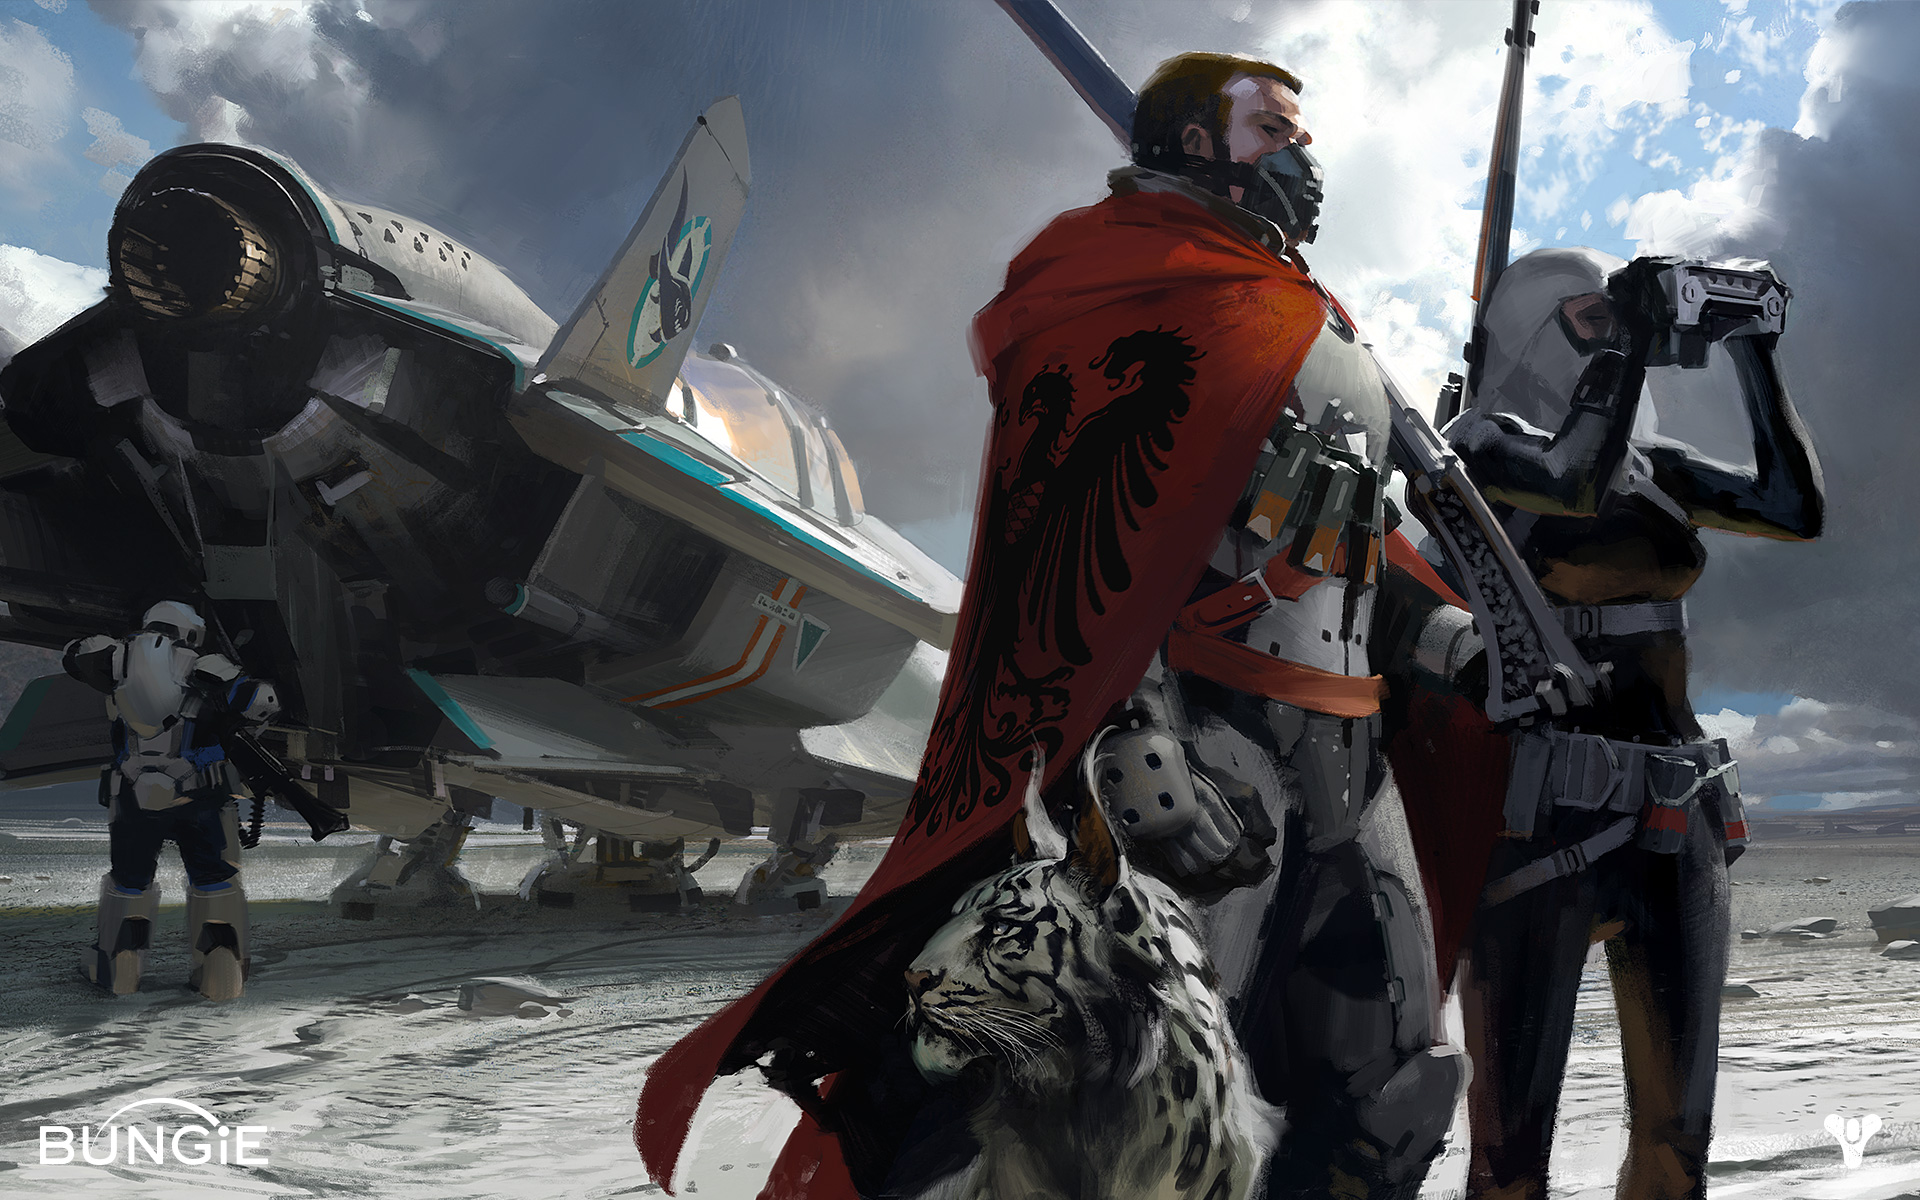 30 free Destiny reward codes that everyone can redeem | GamesRadar+